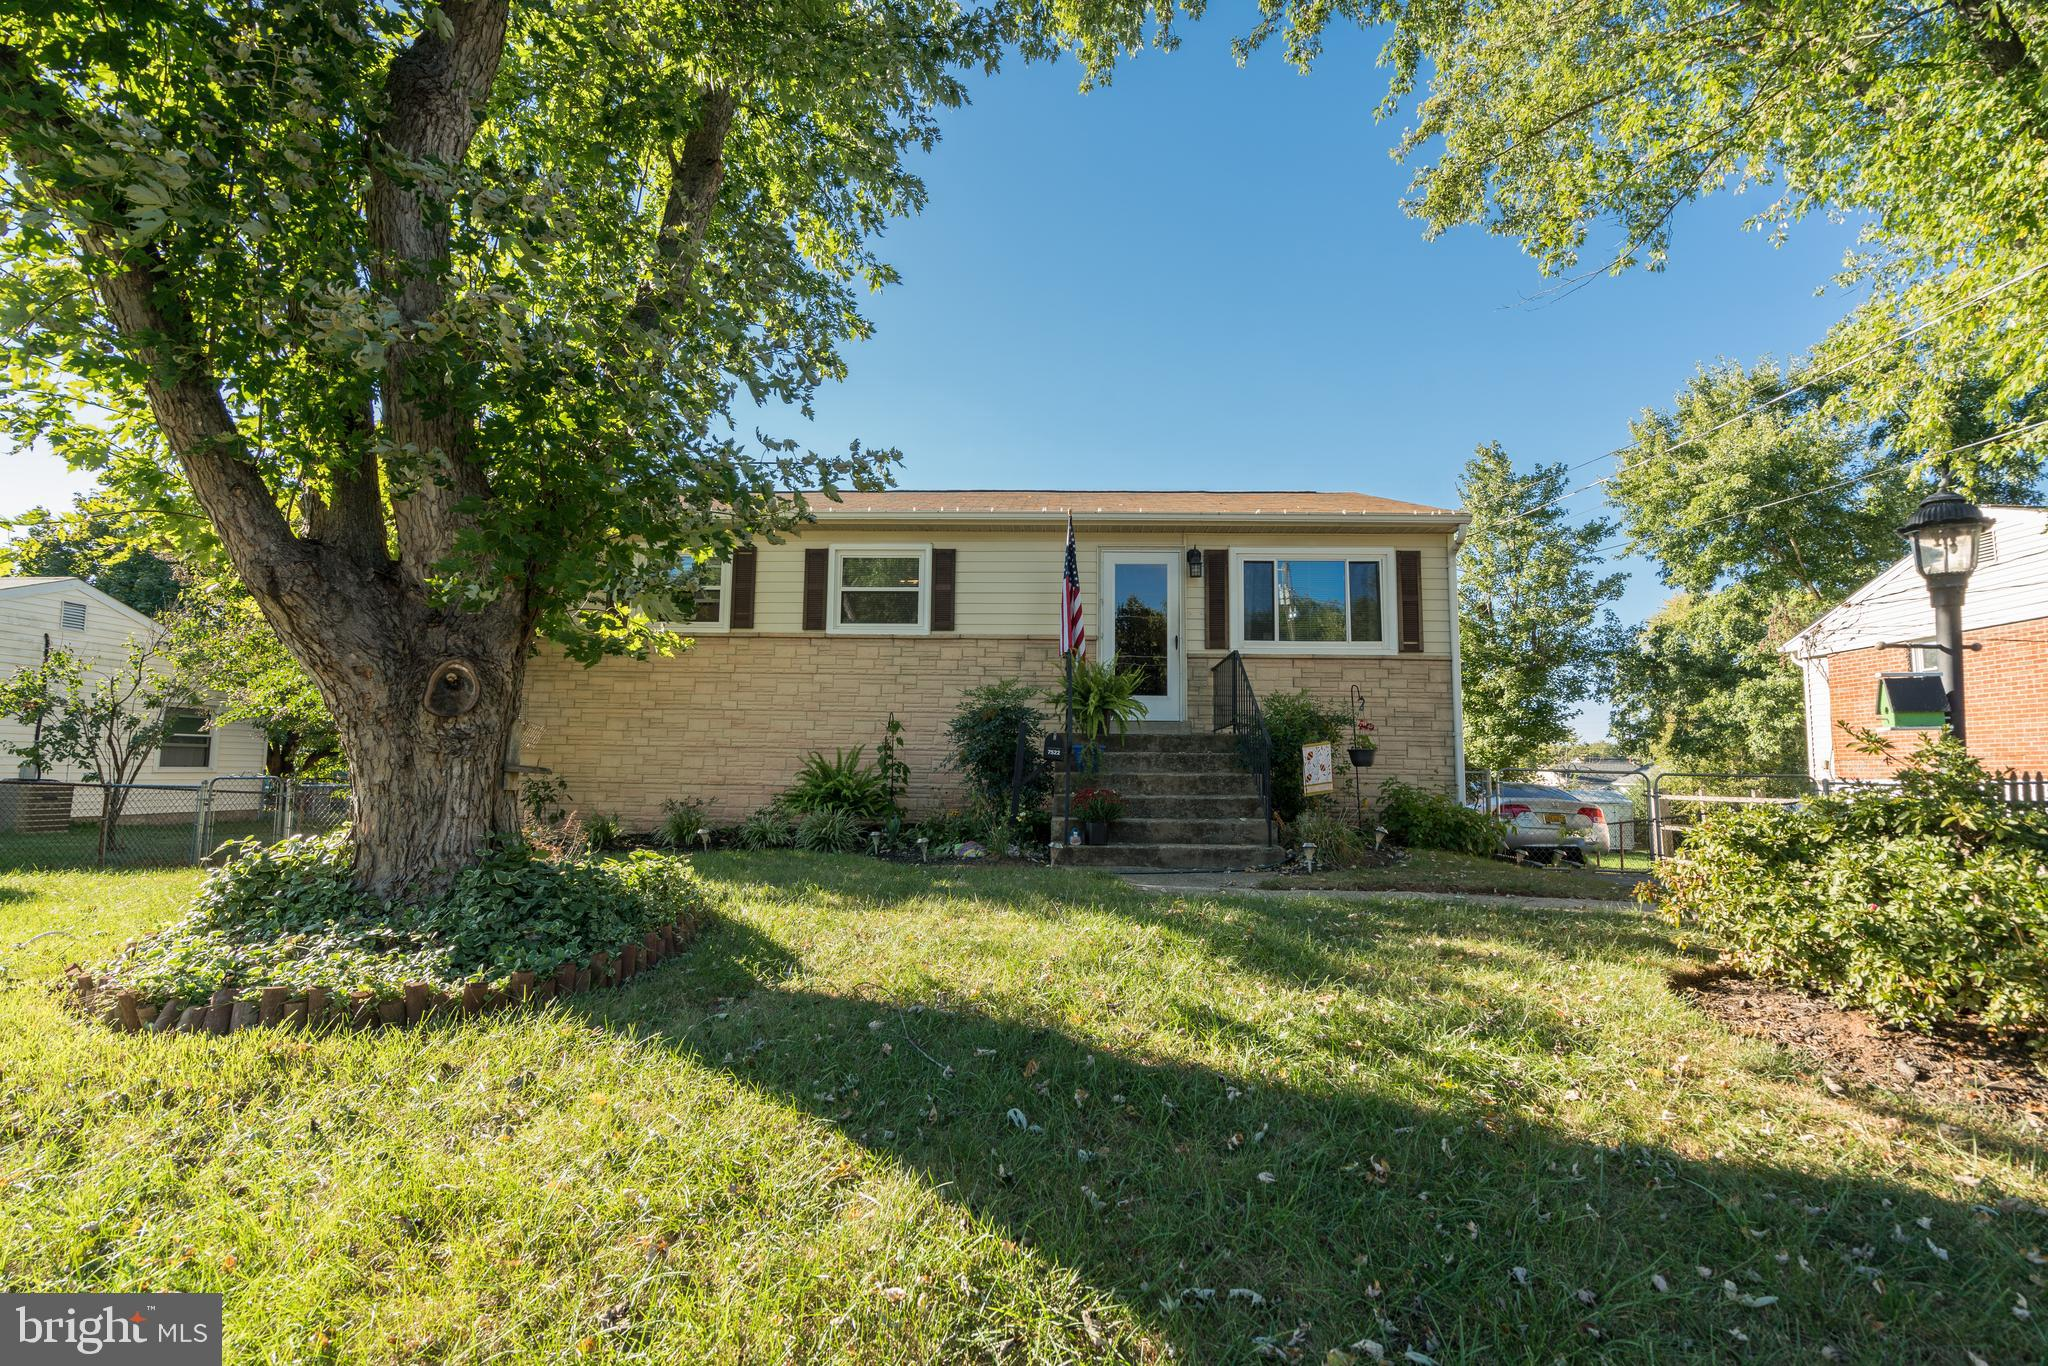 BEAUTIFUL BRICK FRONT TWO LEVEL HOME ON A QUIET STREET. MAIN LEVEL WITH 3 BEDROOMS AND 1 FULL BATHR